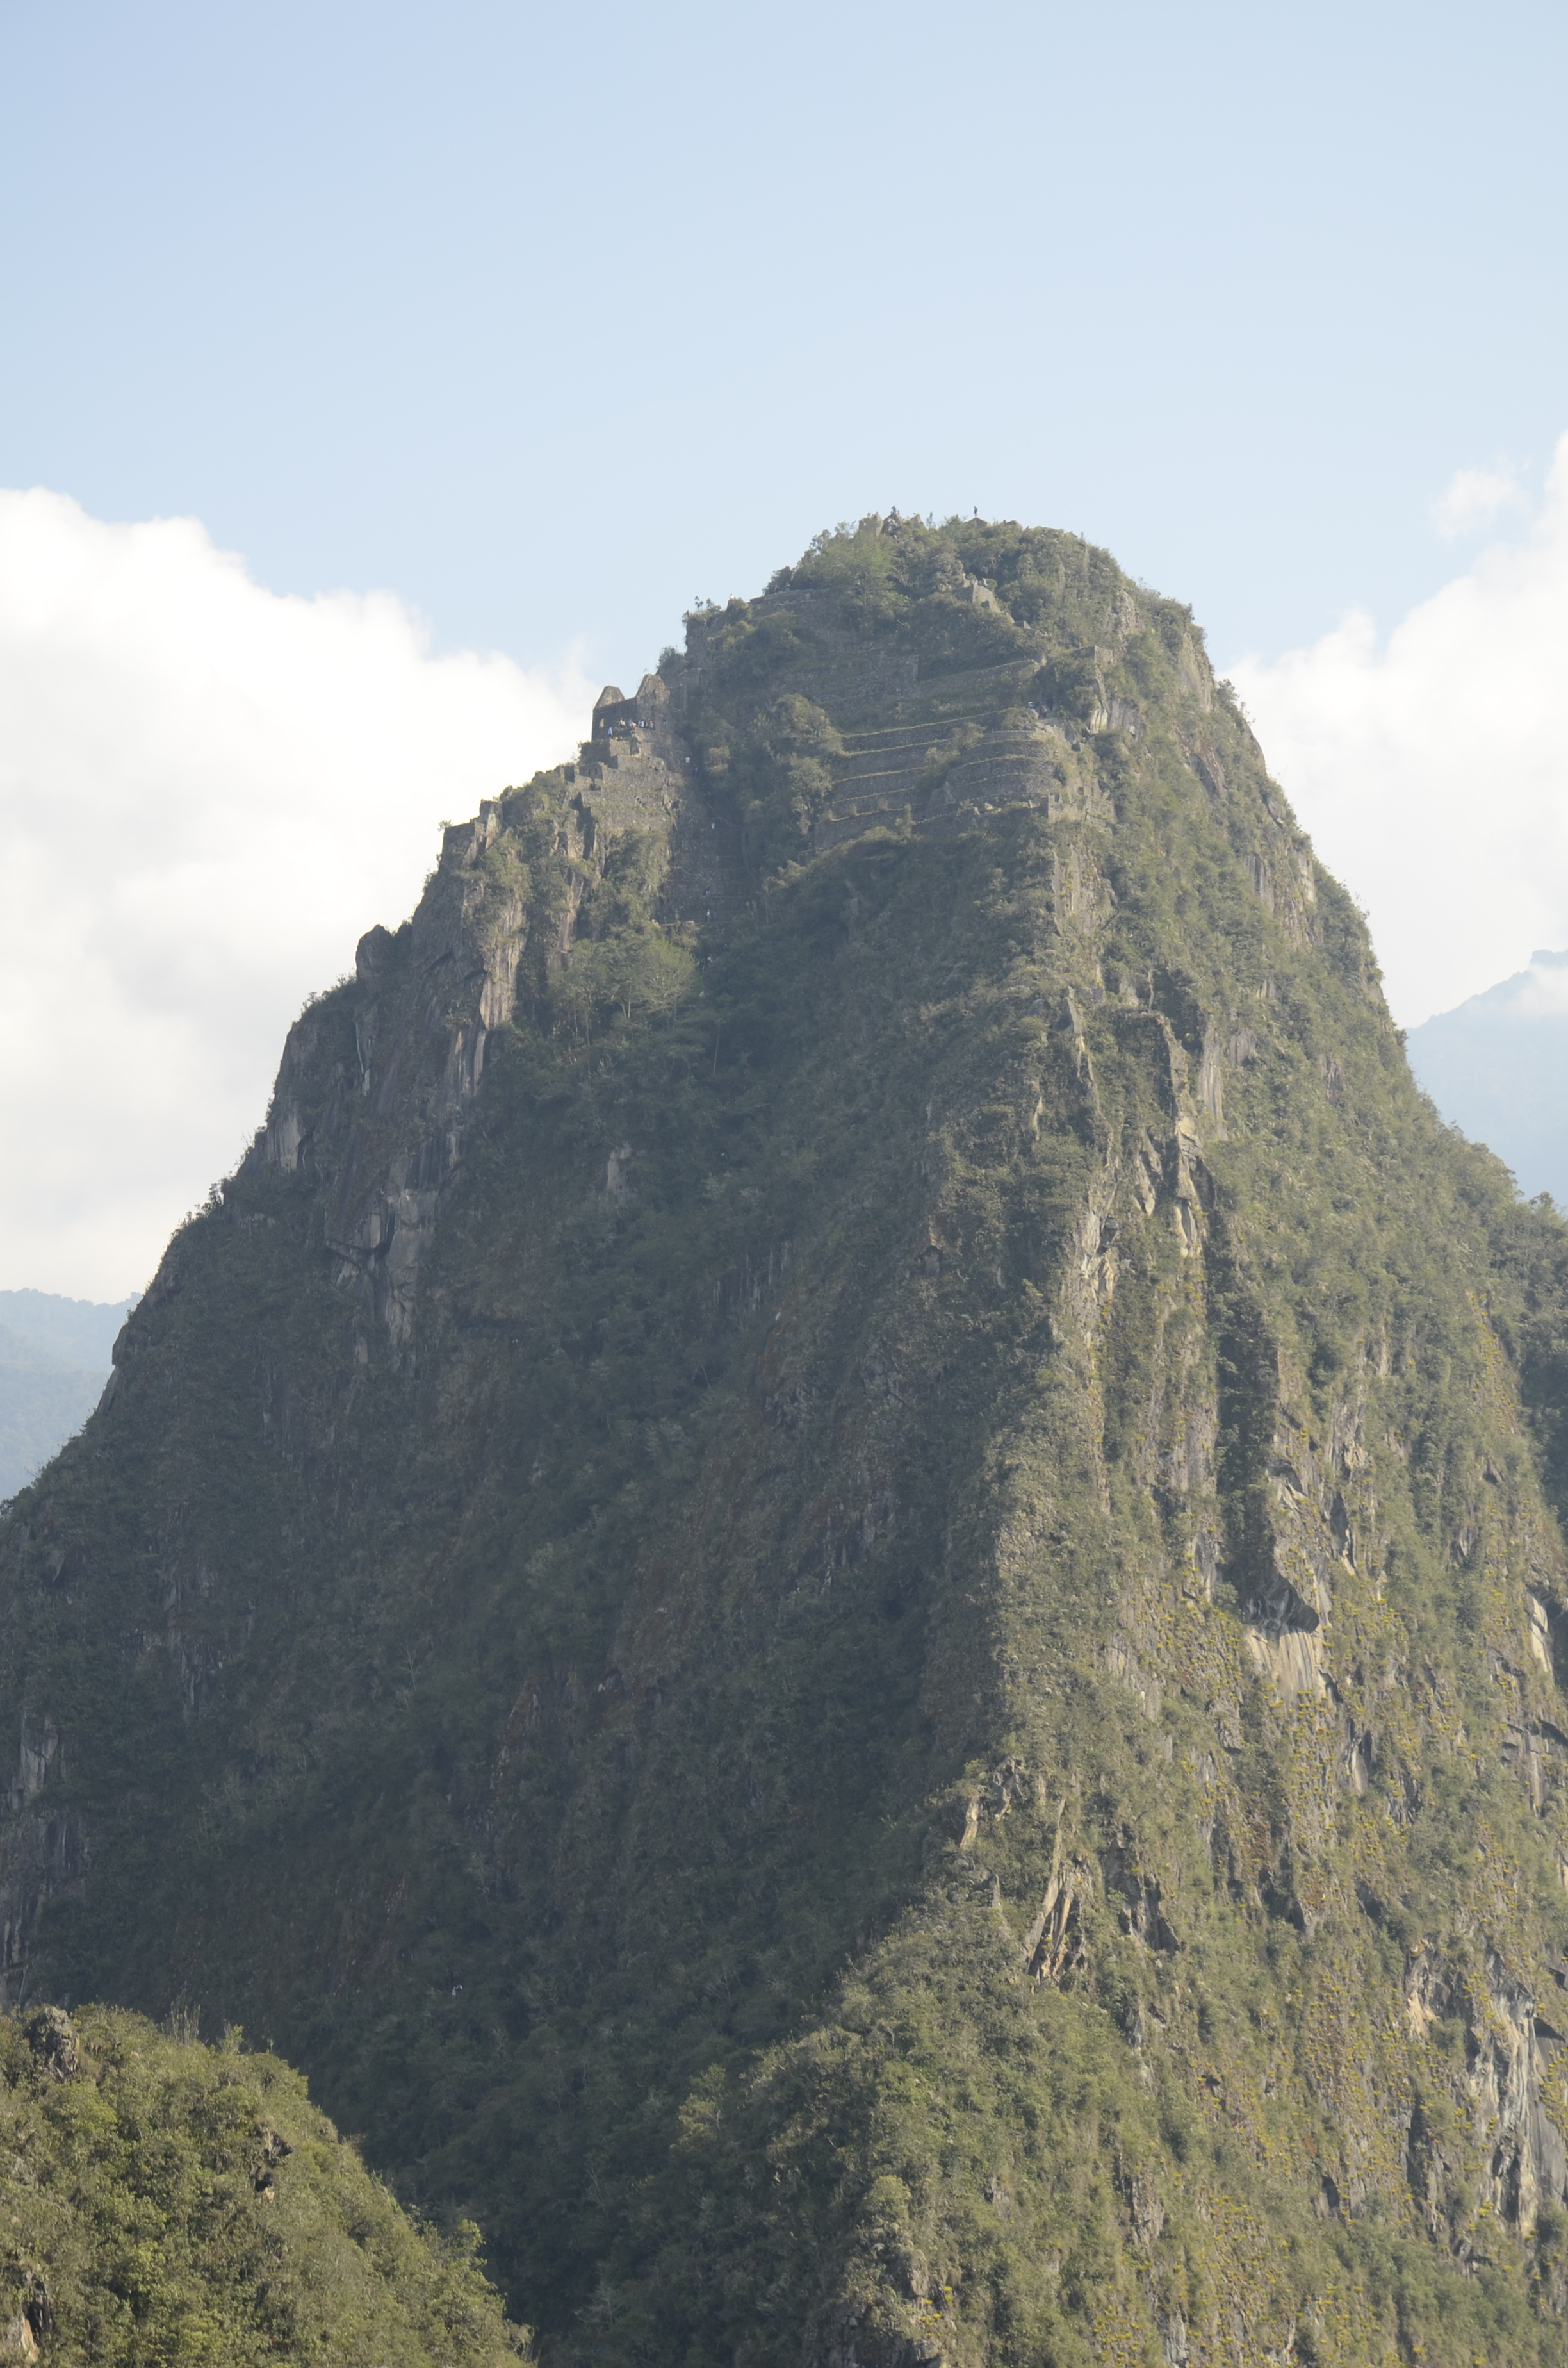 This was my view of WaynuPicchu - Steve is up there somewhere